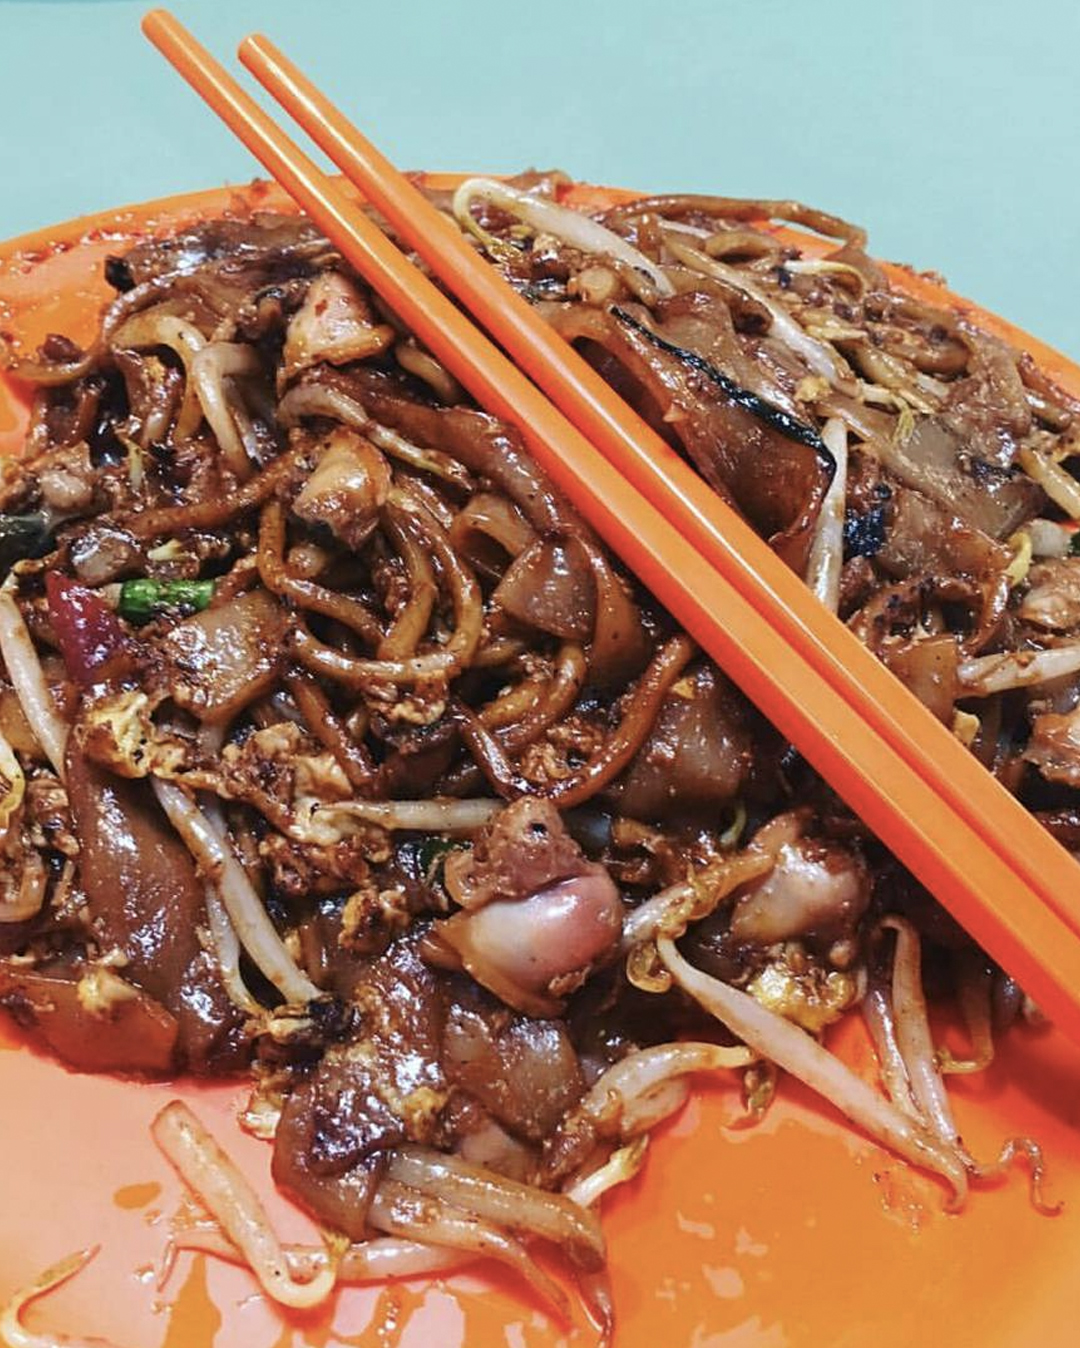 Char kway teow at Hill Street Fried Kway Teow, Singapore.